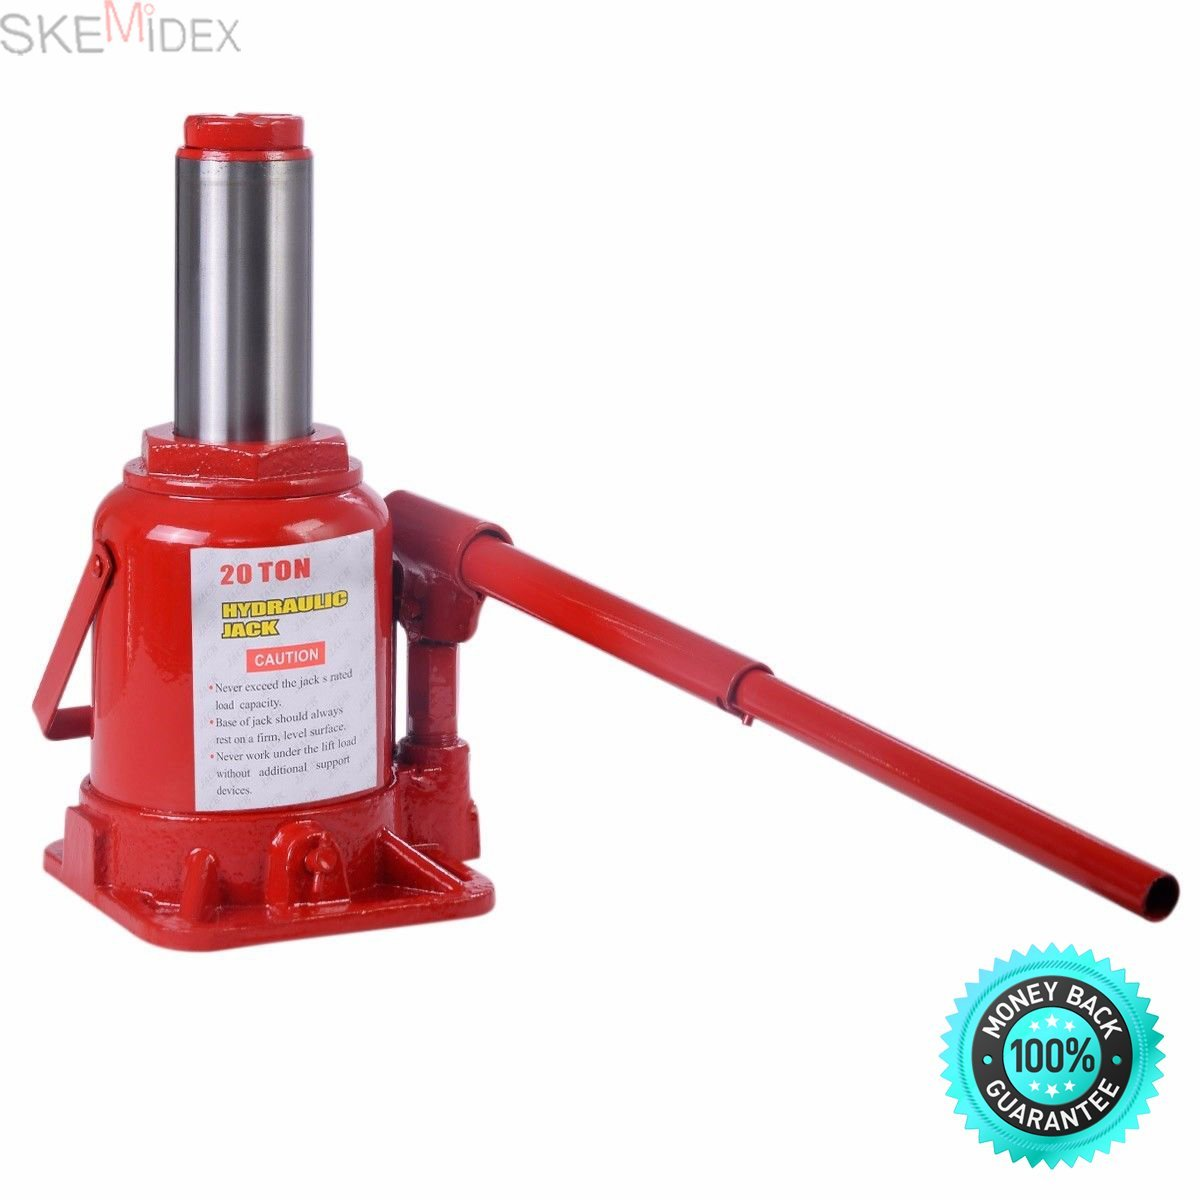 SKEMIDEX---20 TON Hydraulic Bottle Jack Low Profile Automotive Shop Axle Jack Hoist Lift Lifting Capacity: 20 TON Minimum Clearance: 7-1/2-Inch (19 Cm) Adjustable Screw: 2-3/8-Inch (6 Cm) Maximum Lift